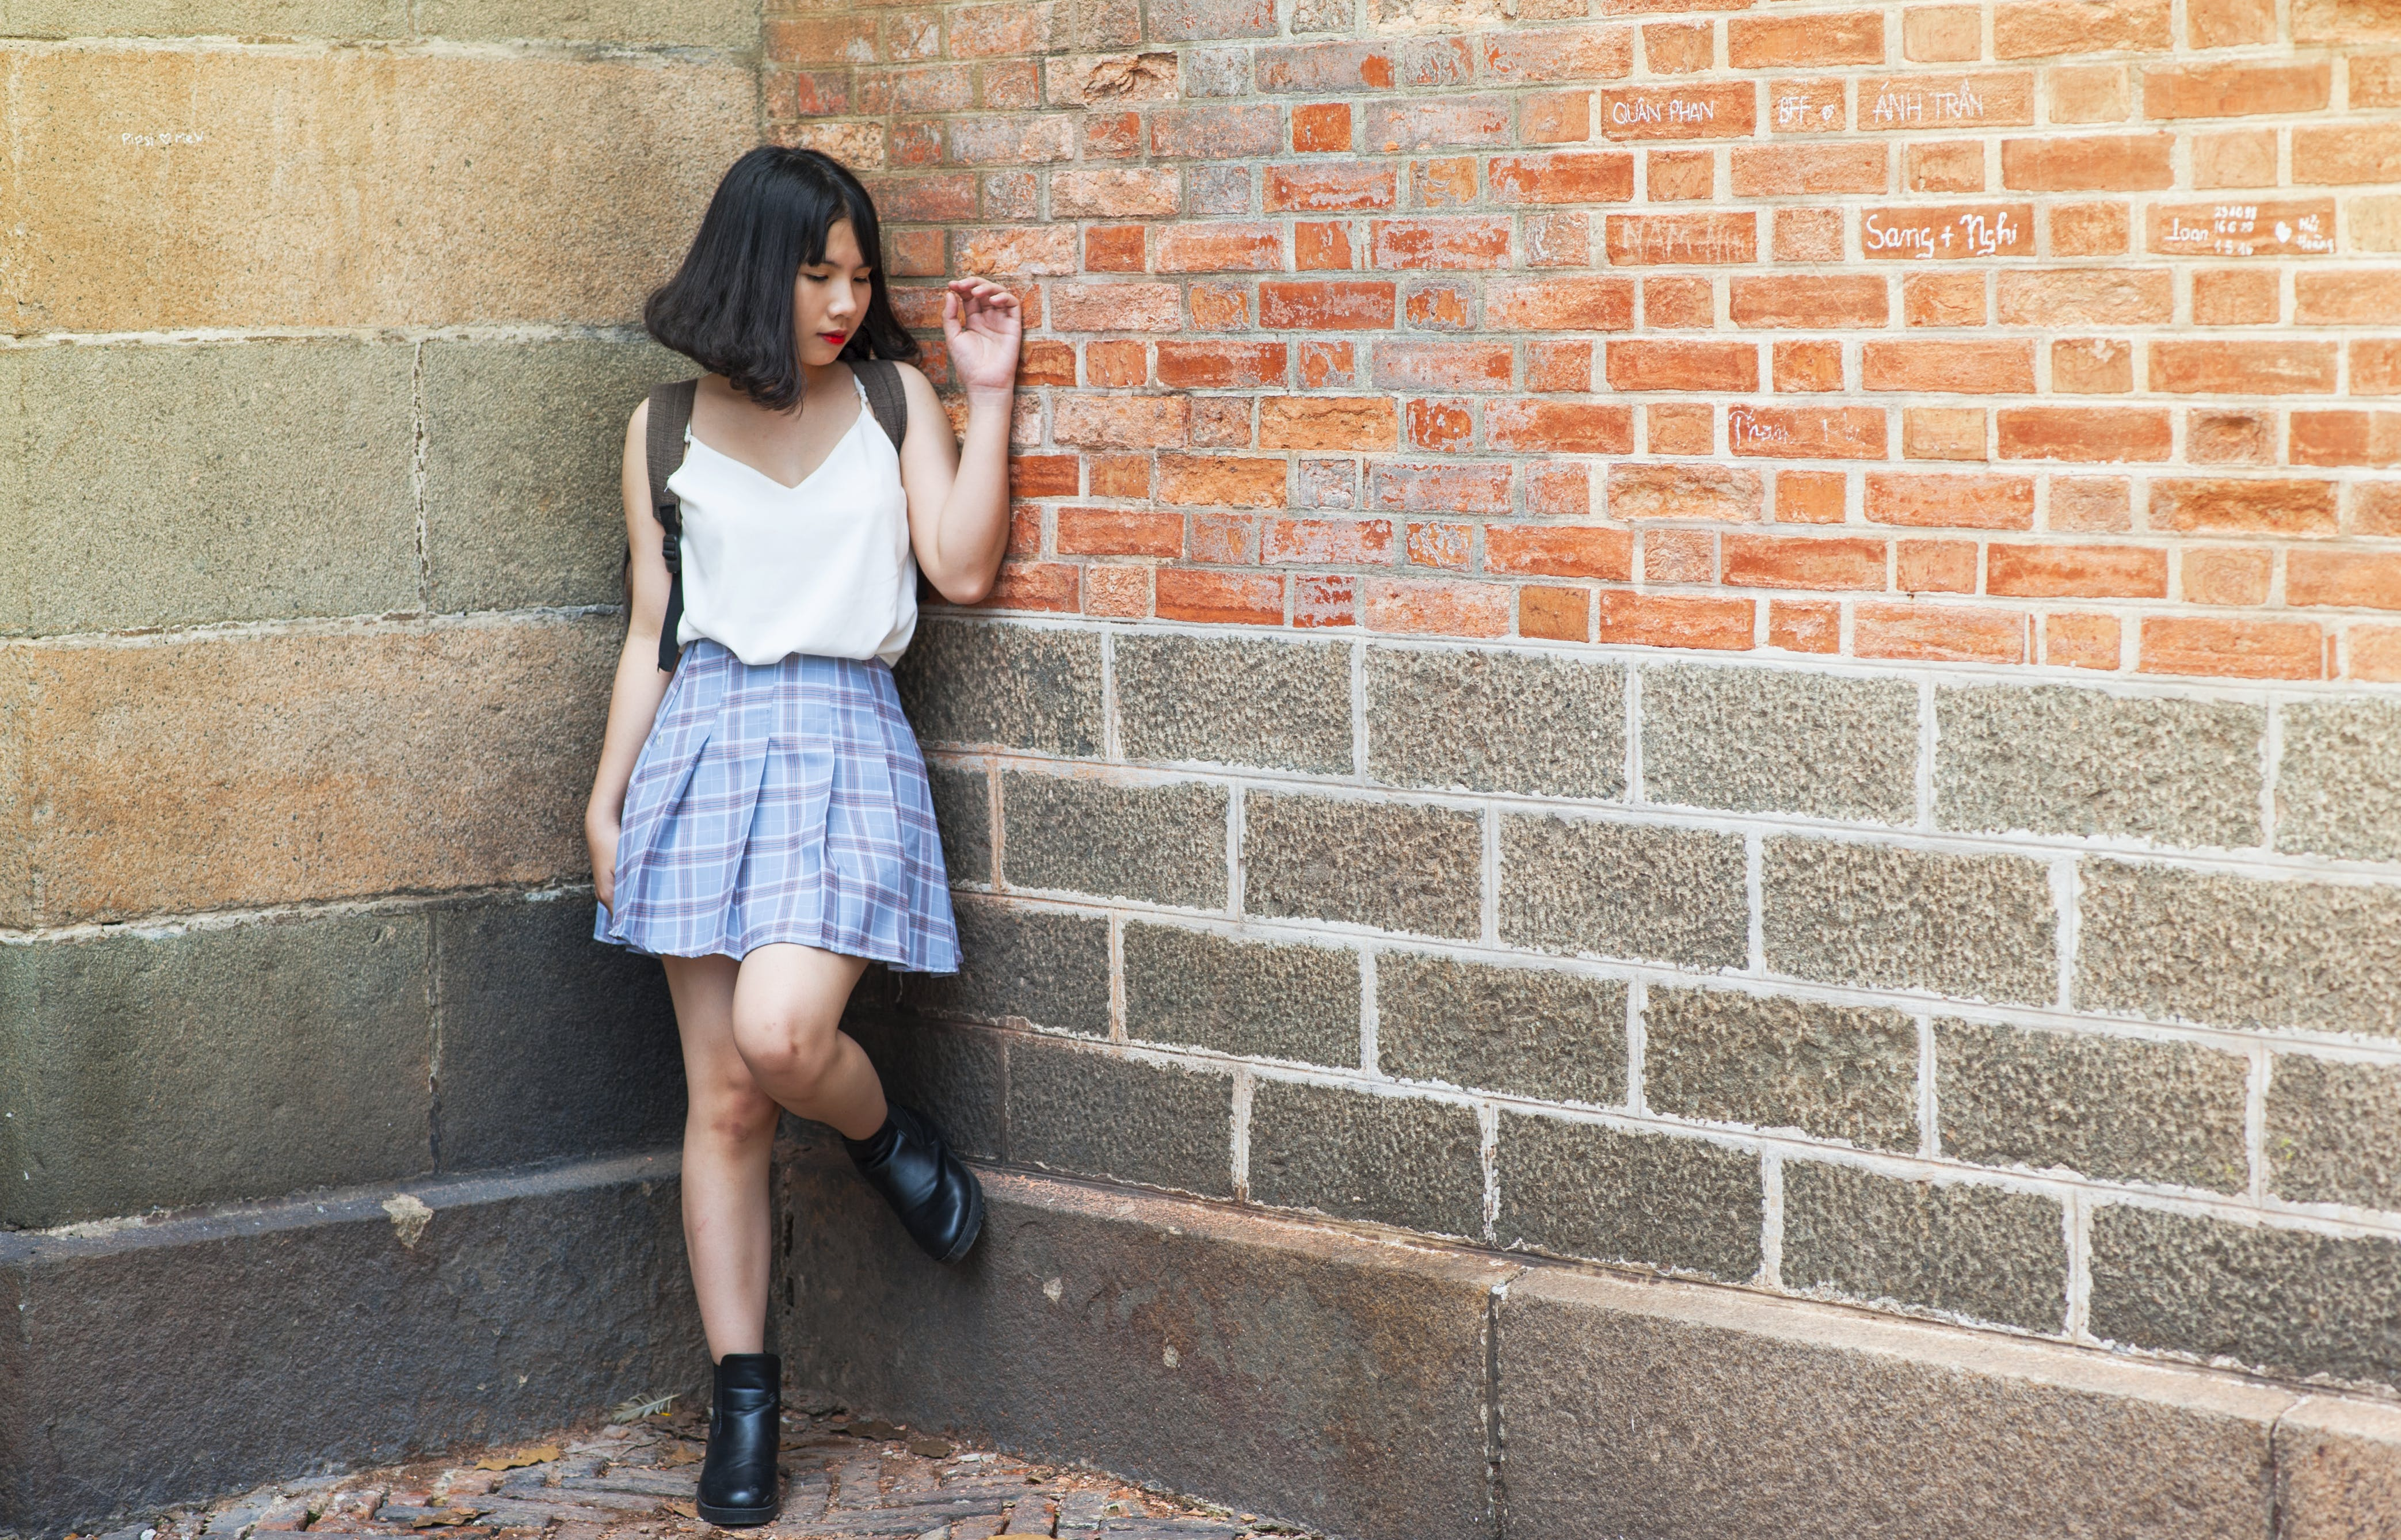 Woman Beside Brick and Cinder Wall